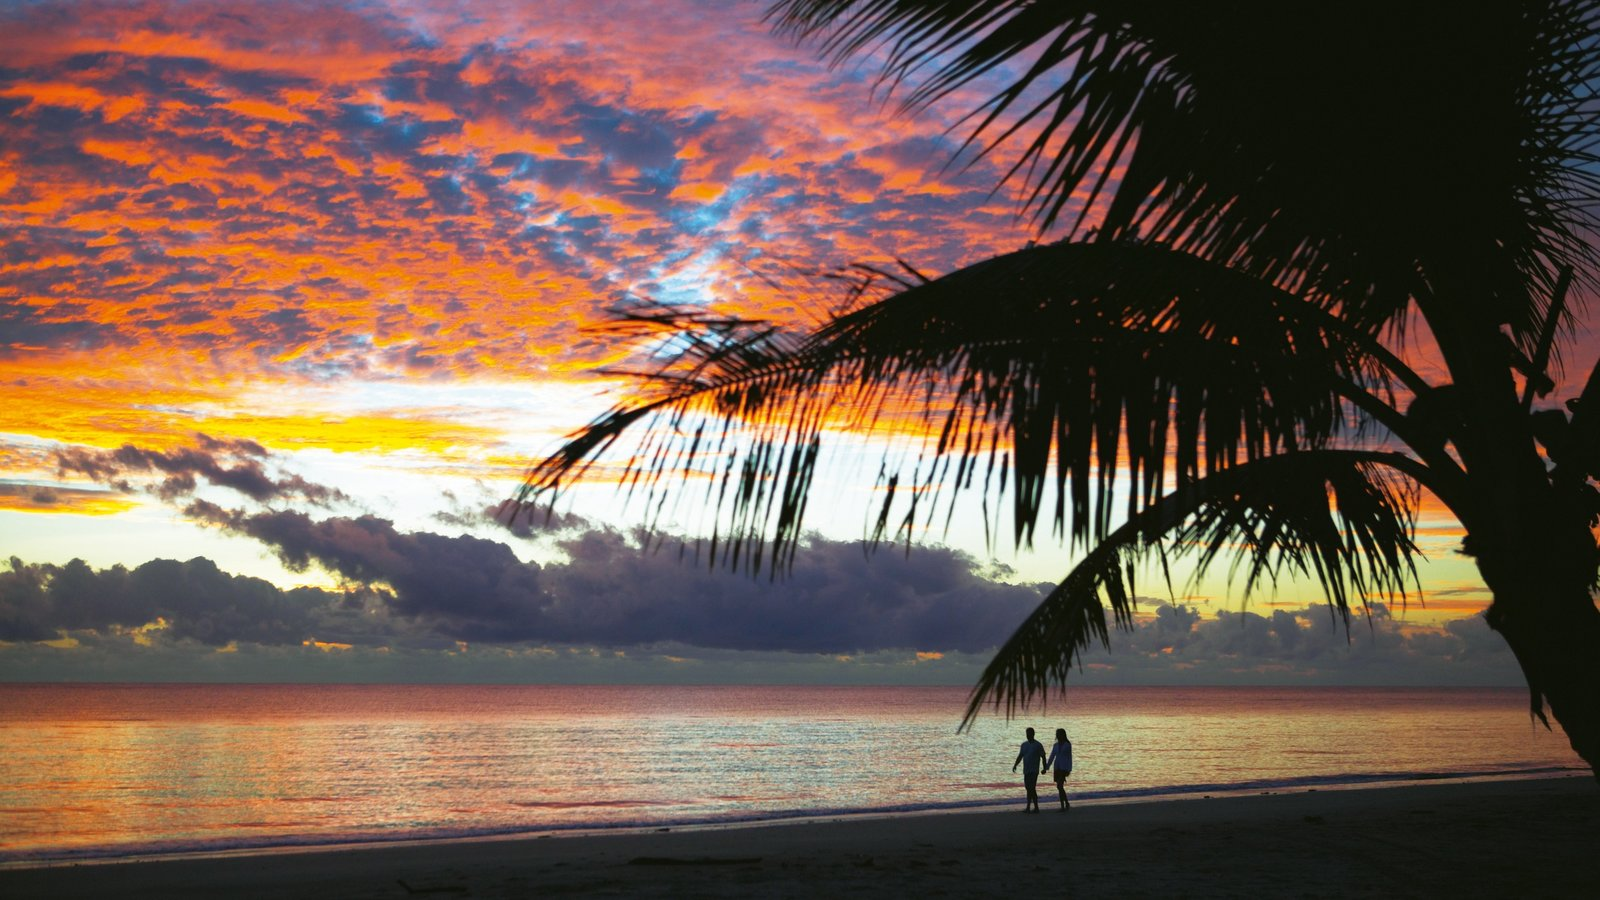 Port Douglas which includes a sandy beach, tropical scenes and a sunset